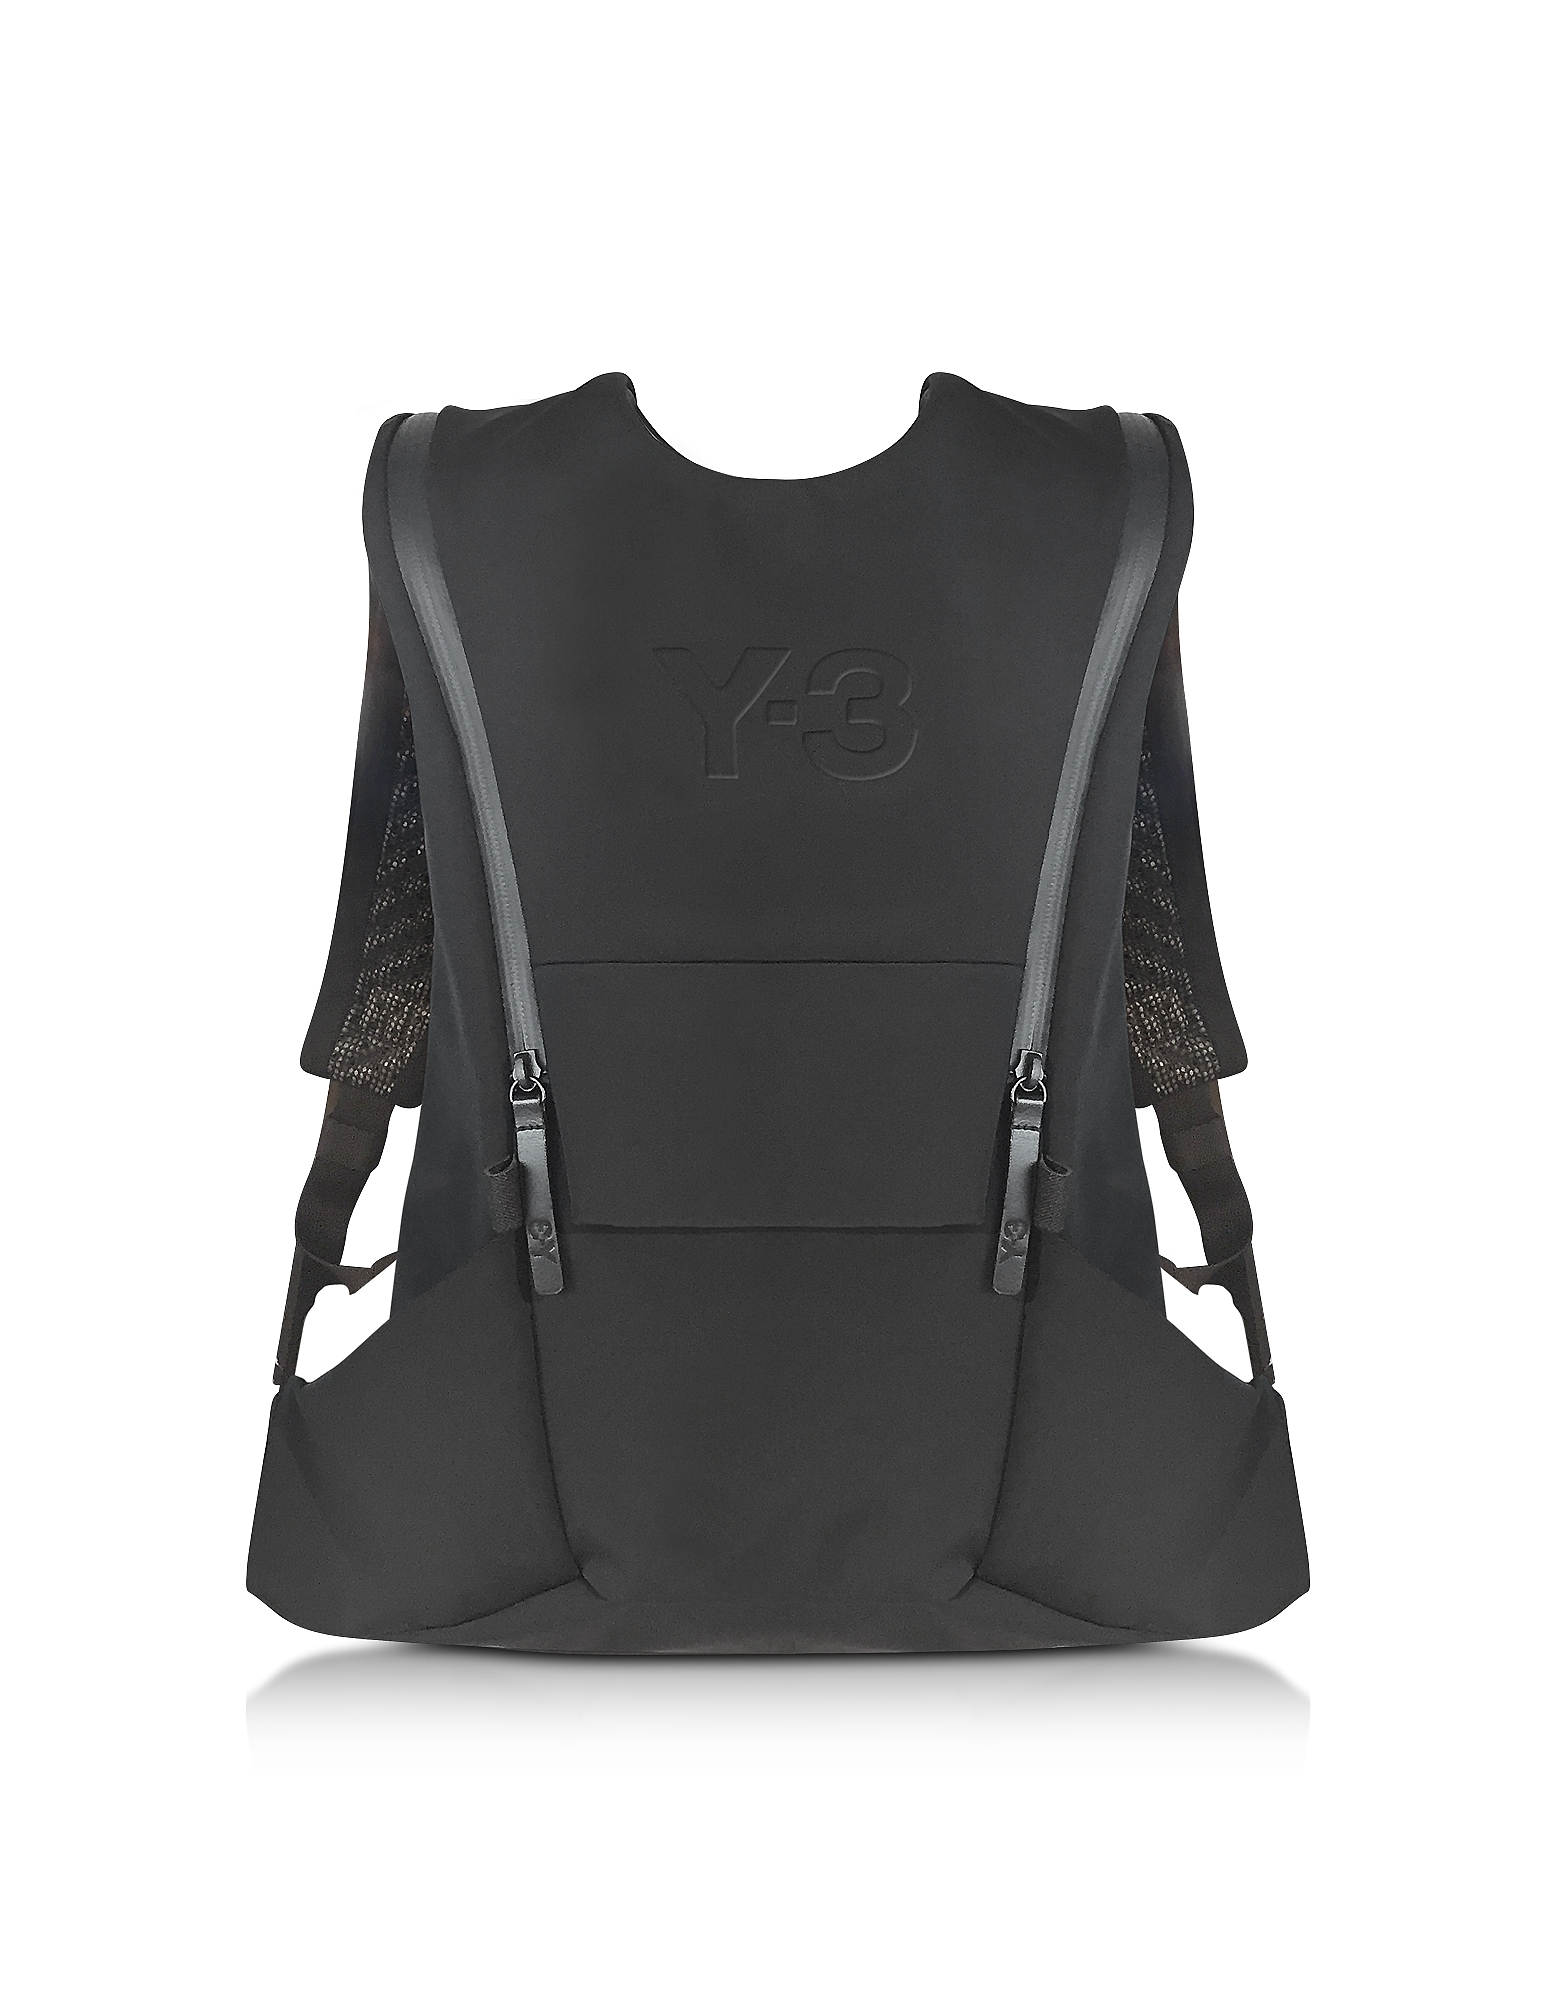 Y-3 Backpacks, Black Y-3 Ultra Run Backpack